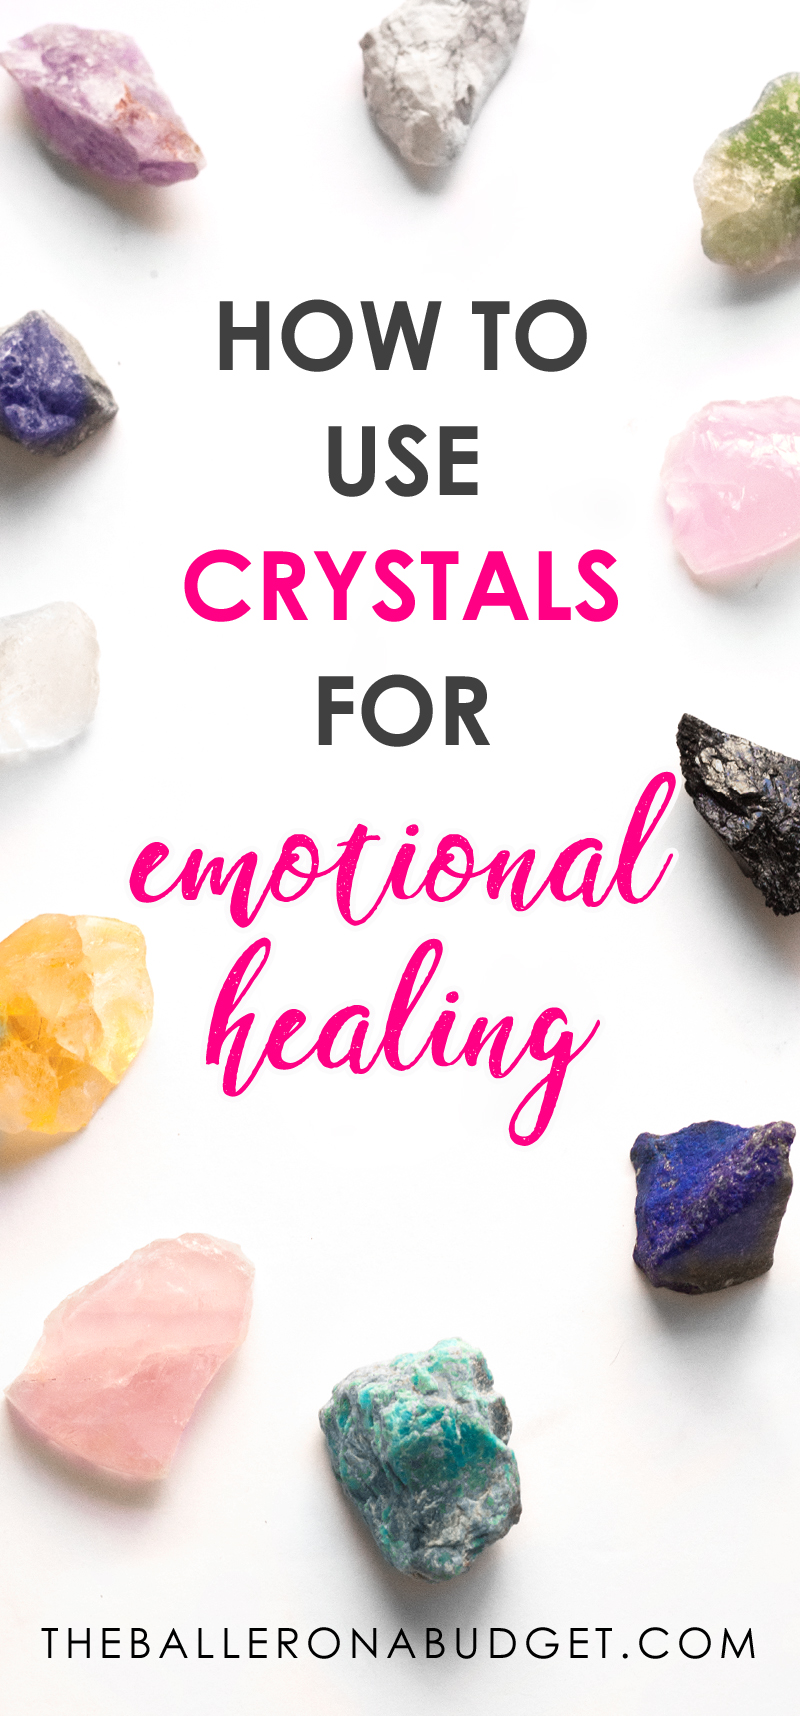 Did you know that having crystals around can help for emotional, mental and physical healing? Crystal healing is said to draw out negative energy. If you're new to crystal healing, check out this full beginner's guide along with the best store to buy crystals from online. - www.theballeronabudget.com